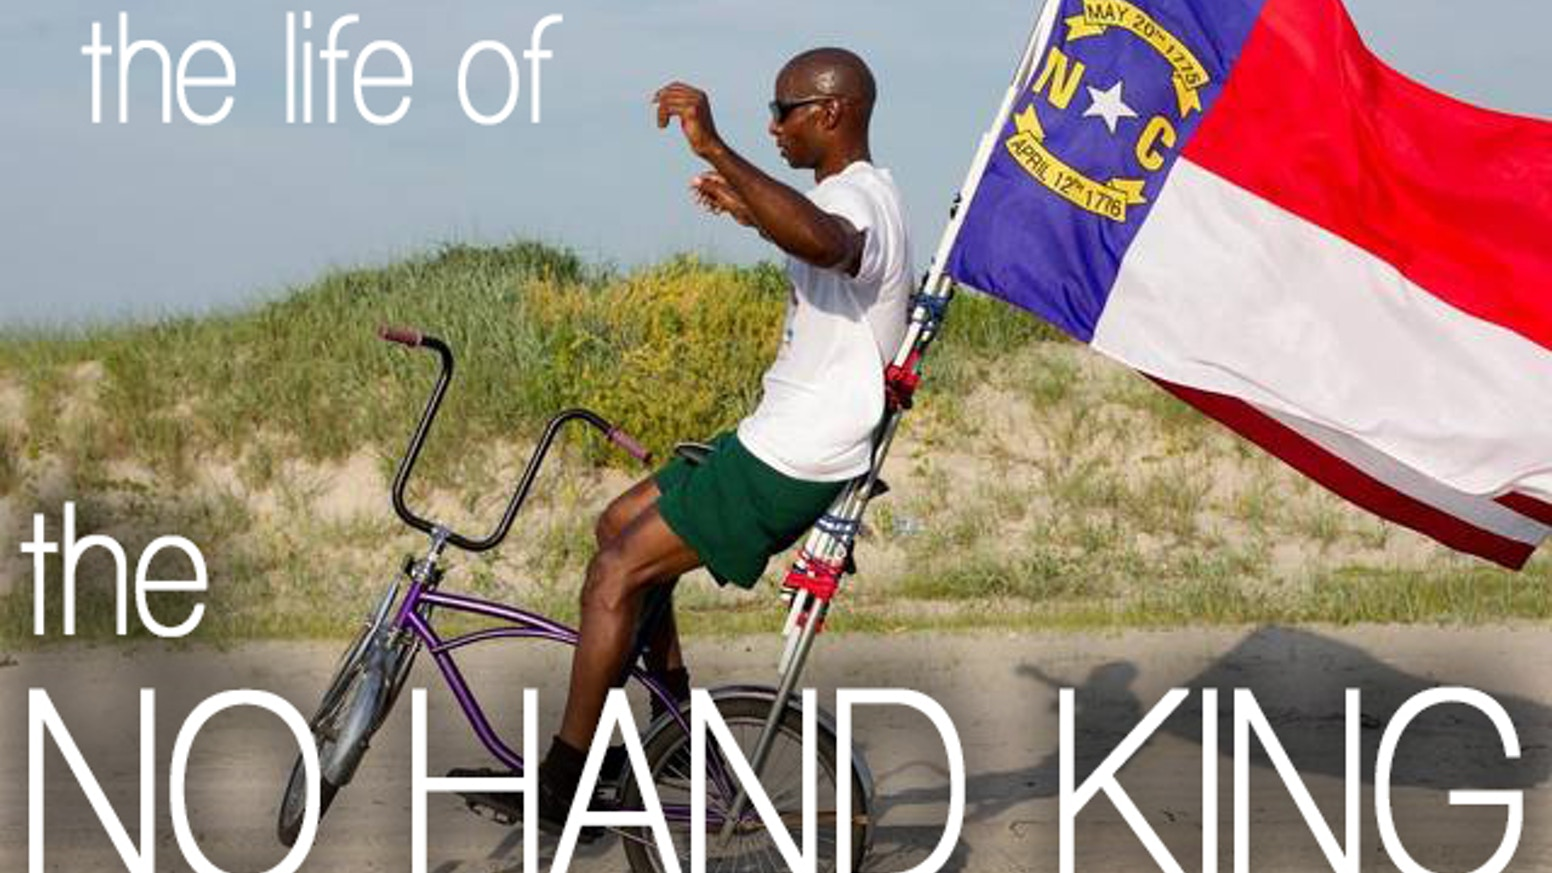 Rodney Hines, the No Hand King tells his story of struggle and triumph riding the longest no hand bike wheelie. Be a part of history!